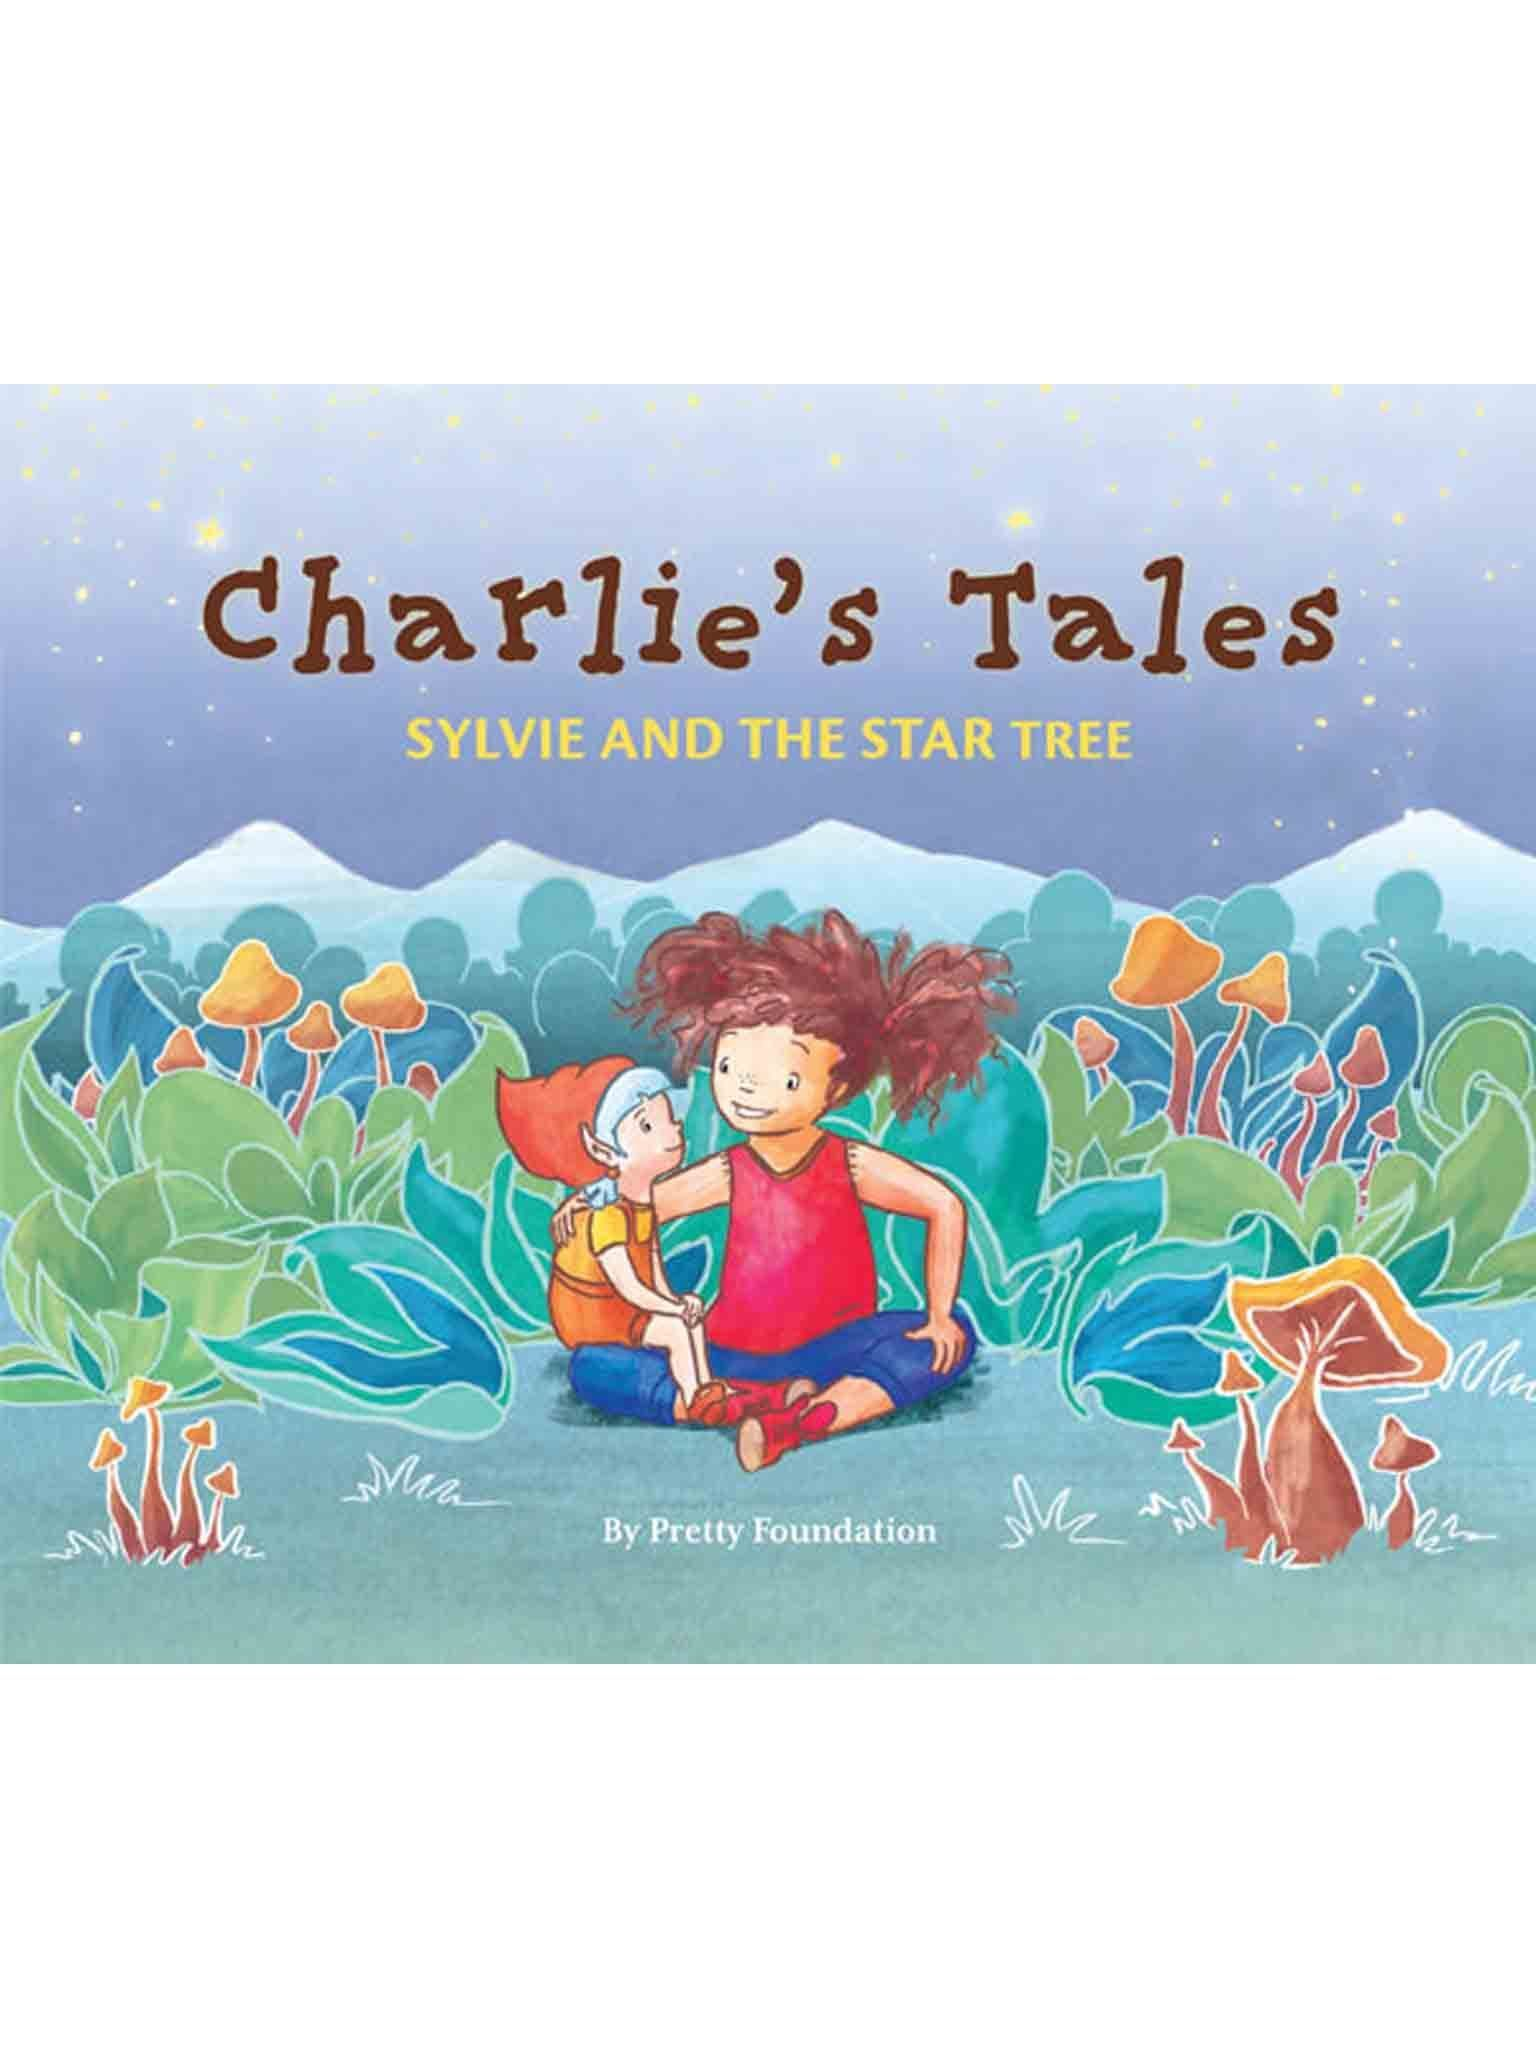 Charlie's Tales Sylvie and the Star Tree, Books - Oobi Girls Kid Fashion